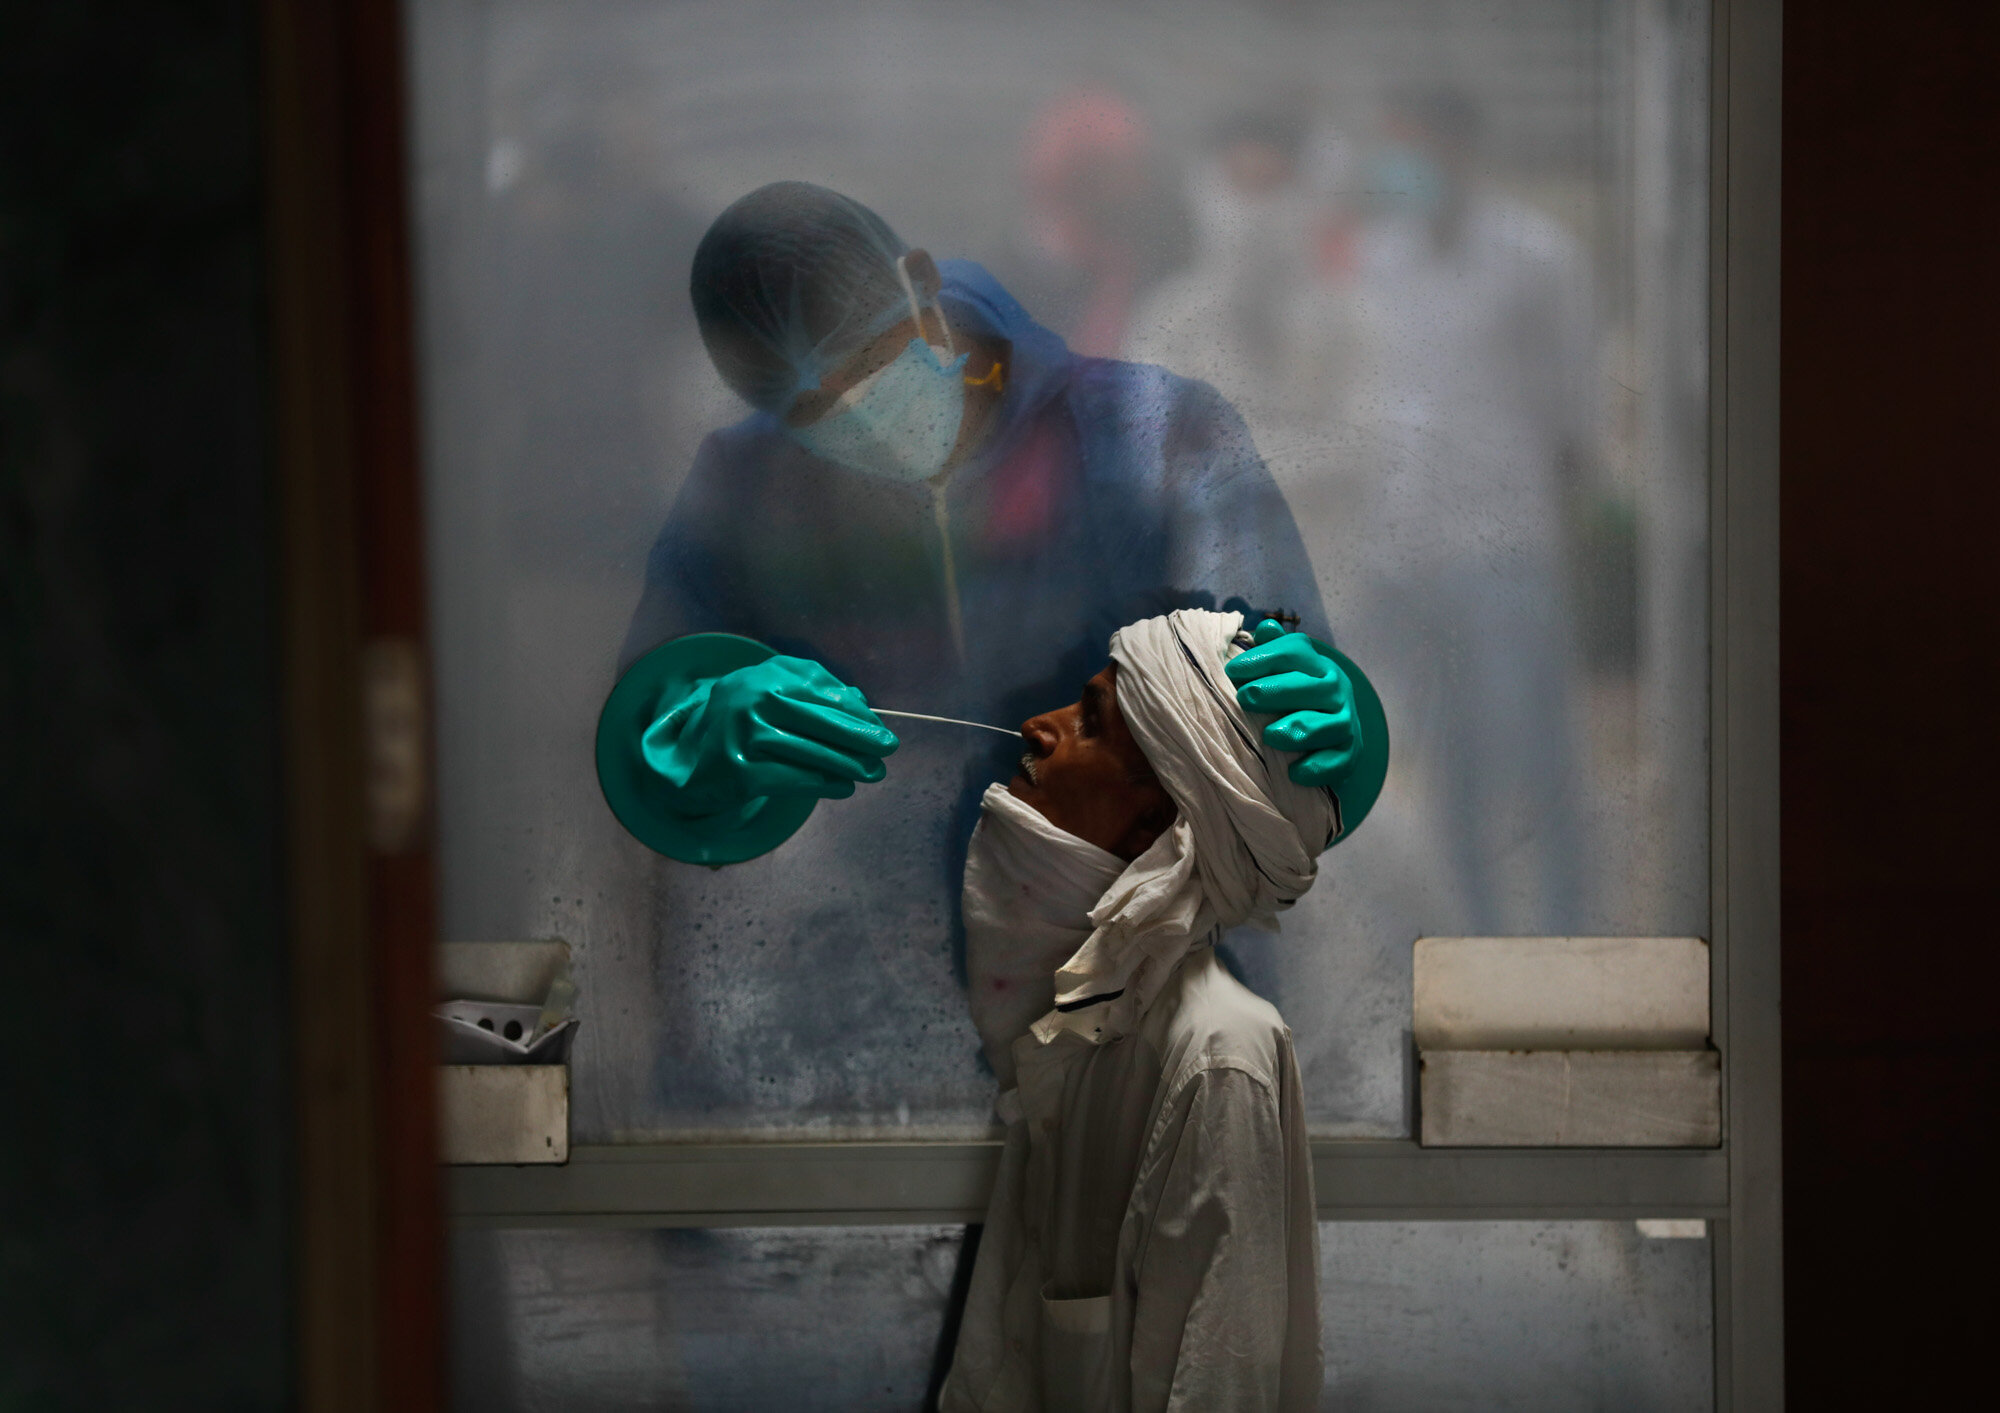 A health worker takes a nasal swab of a person for a COVID-19 test at a hospital in New Delhi, India, on July 6, 2020. (AP Photo/Manish Swarup)